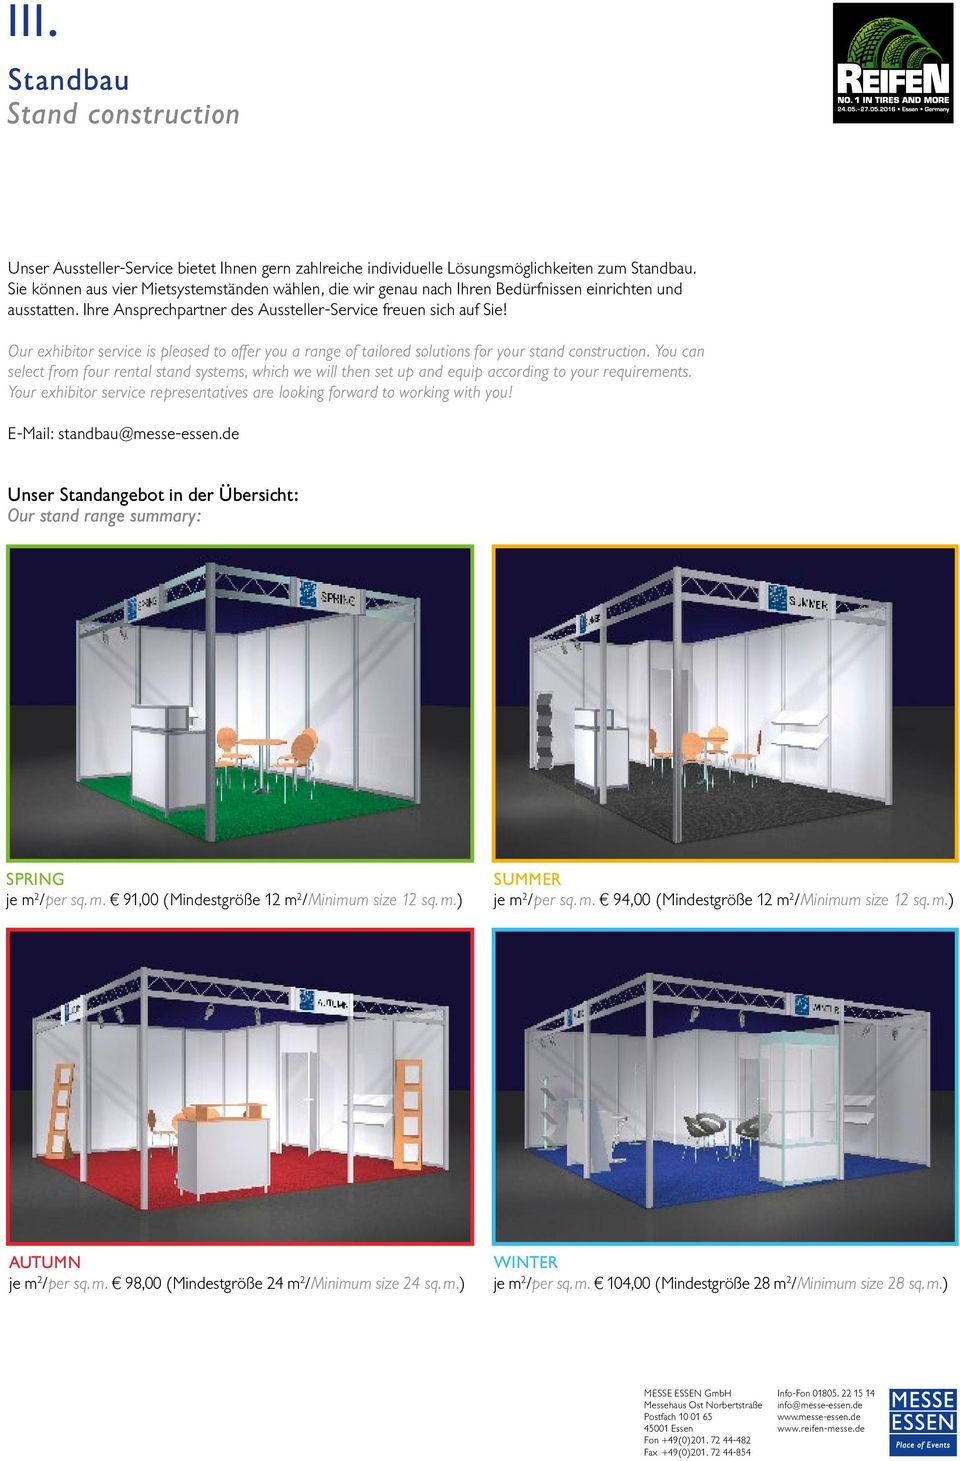 Our exhibitor service is pleased to offer you a range of tailored solutions for your stand construction.